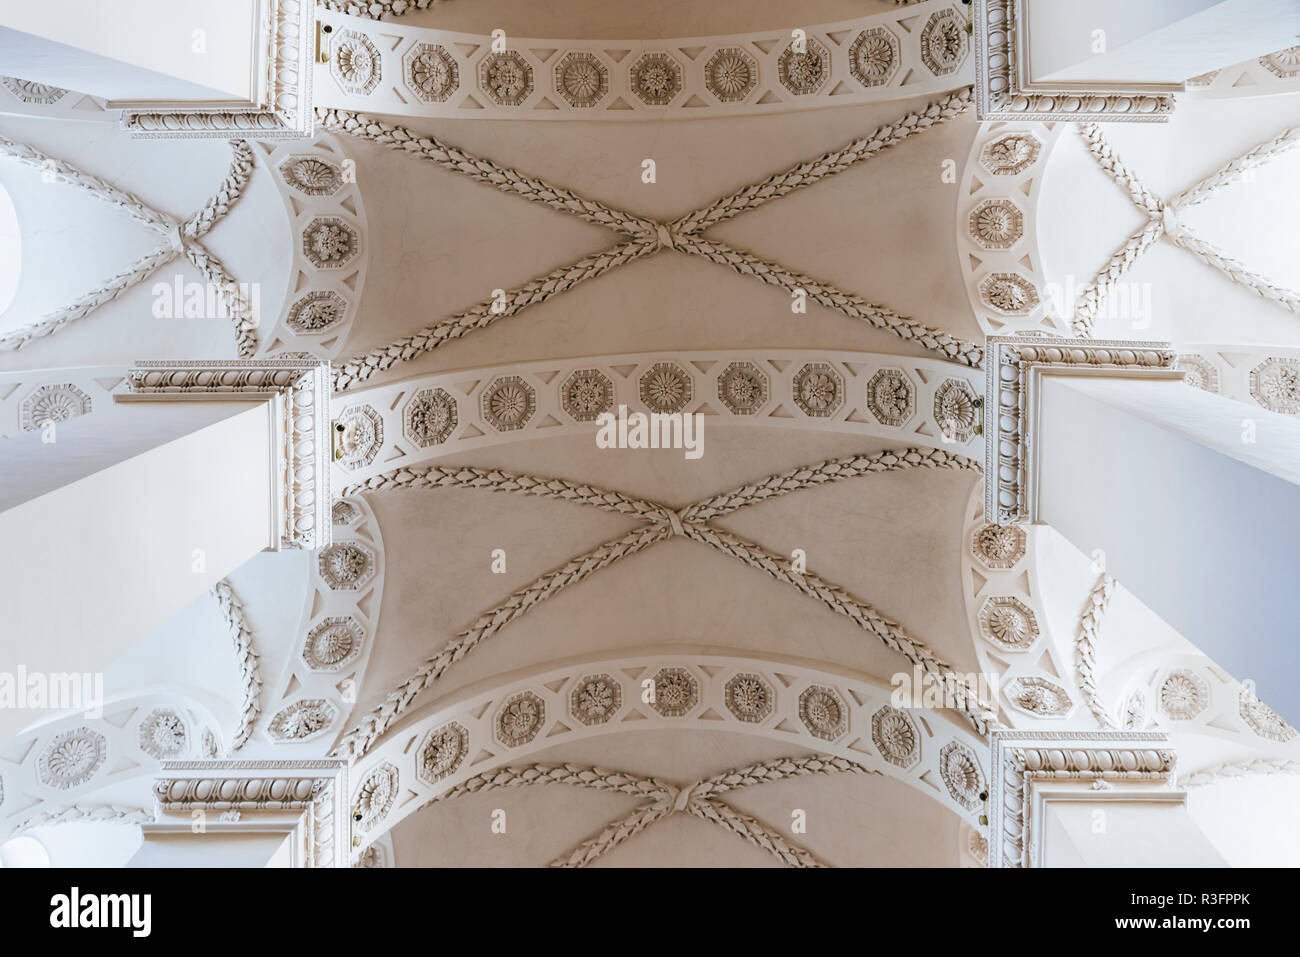 Ceiling, Cathedral Basilica of St Stanislaus and St Ladislaus of Vilnius is the main Roman Catholic Cathedral of Lithuania.Vilnius, Vilnius County, Li - Stock Image